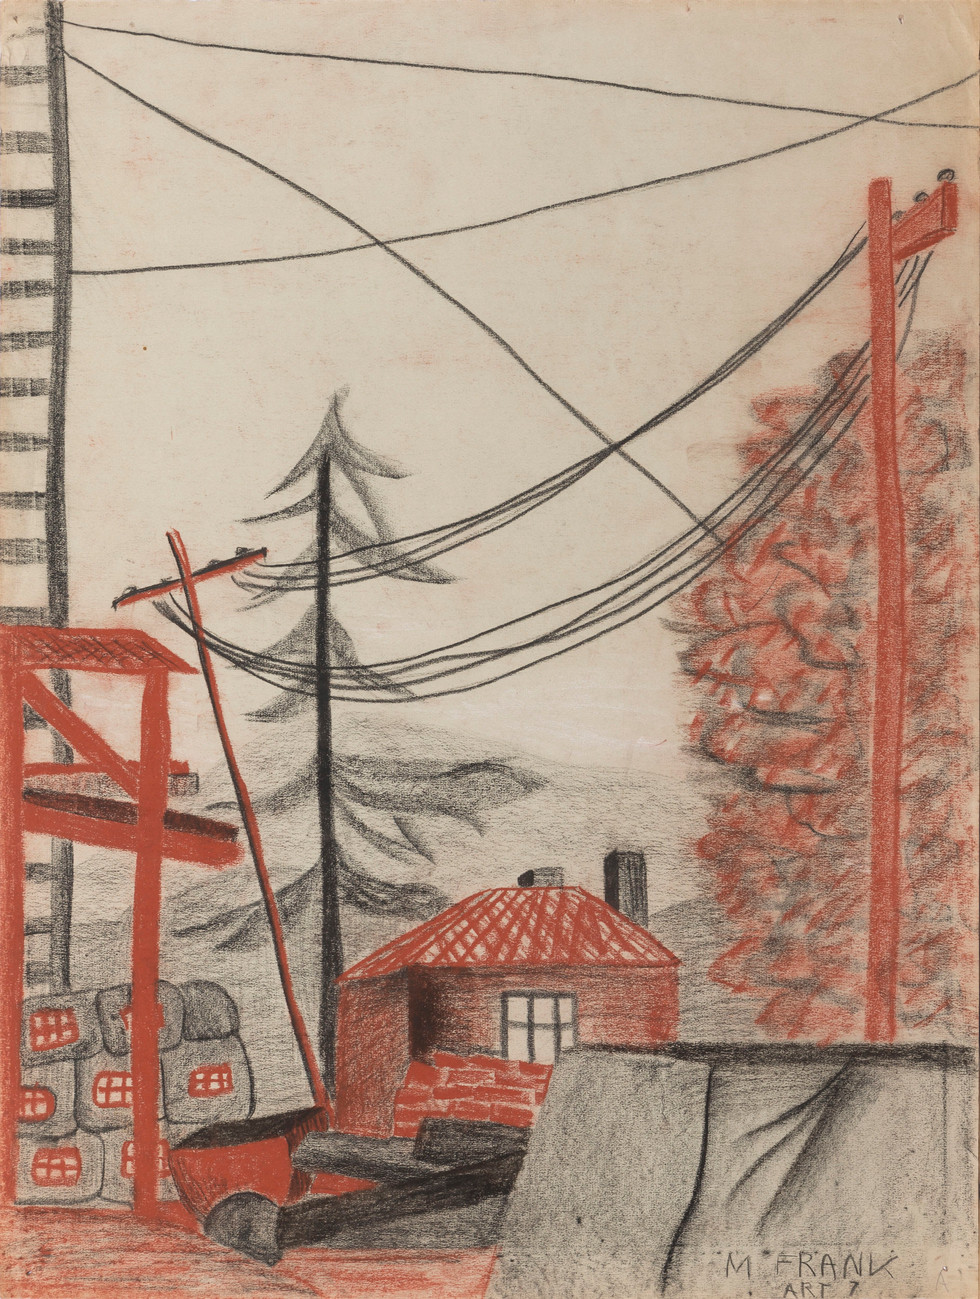 Untitled - red house and telephone poles